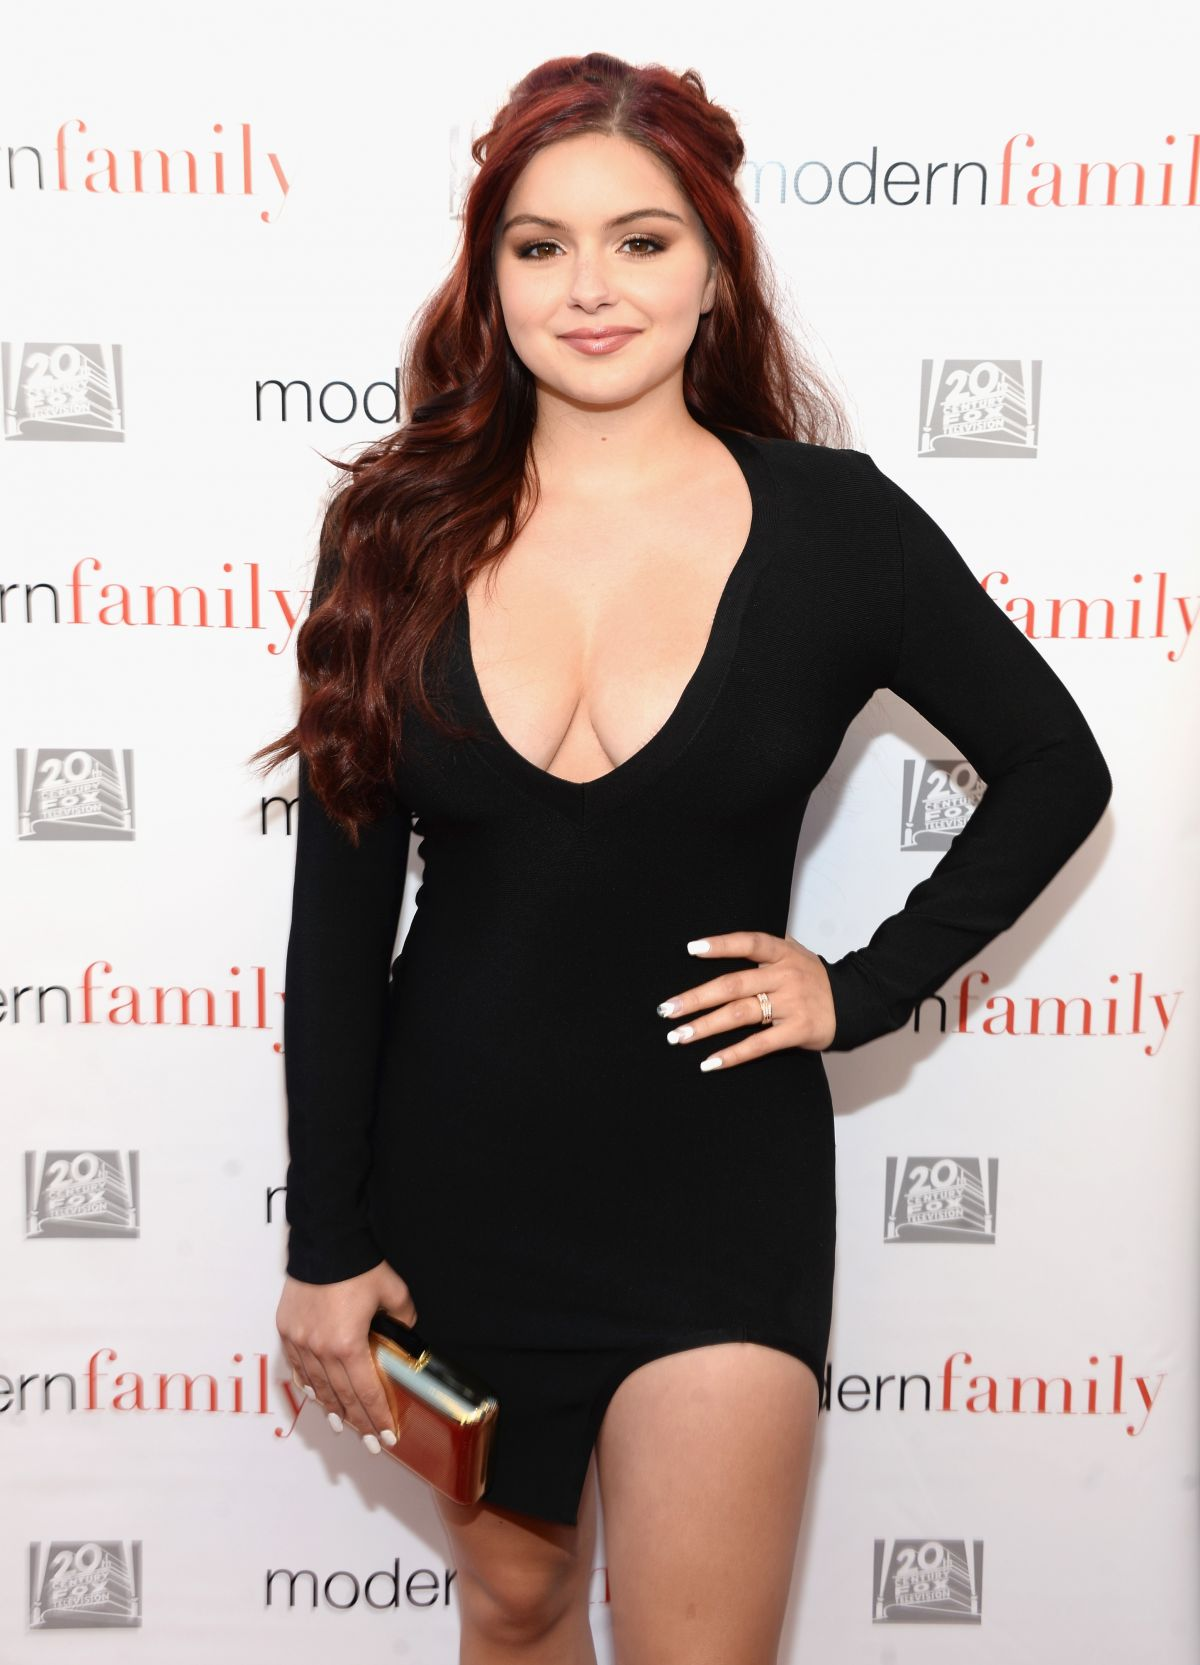 fbc85cdd65 ARIEL WINTER at Modern Family EMMY Event in Los Angeles 05/02/2016 ...